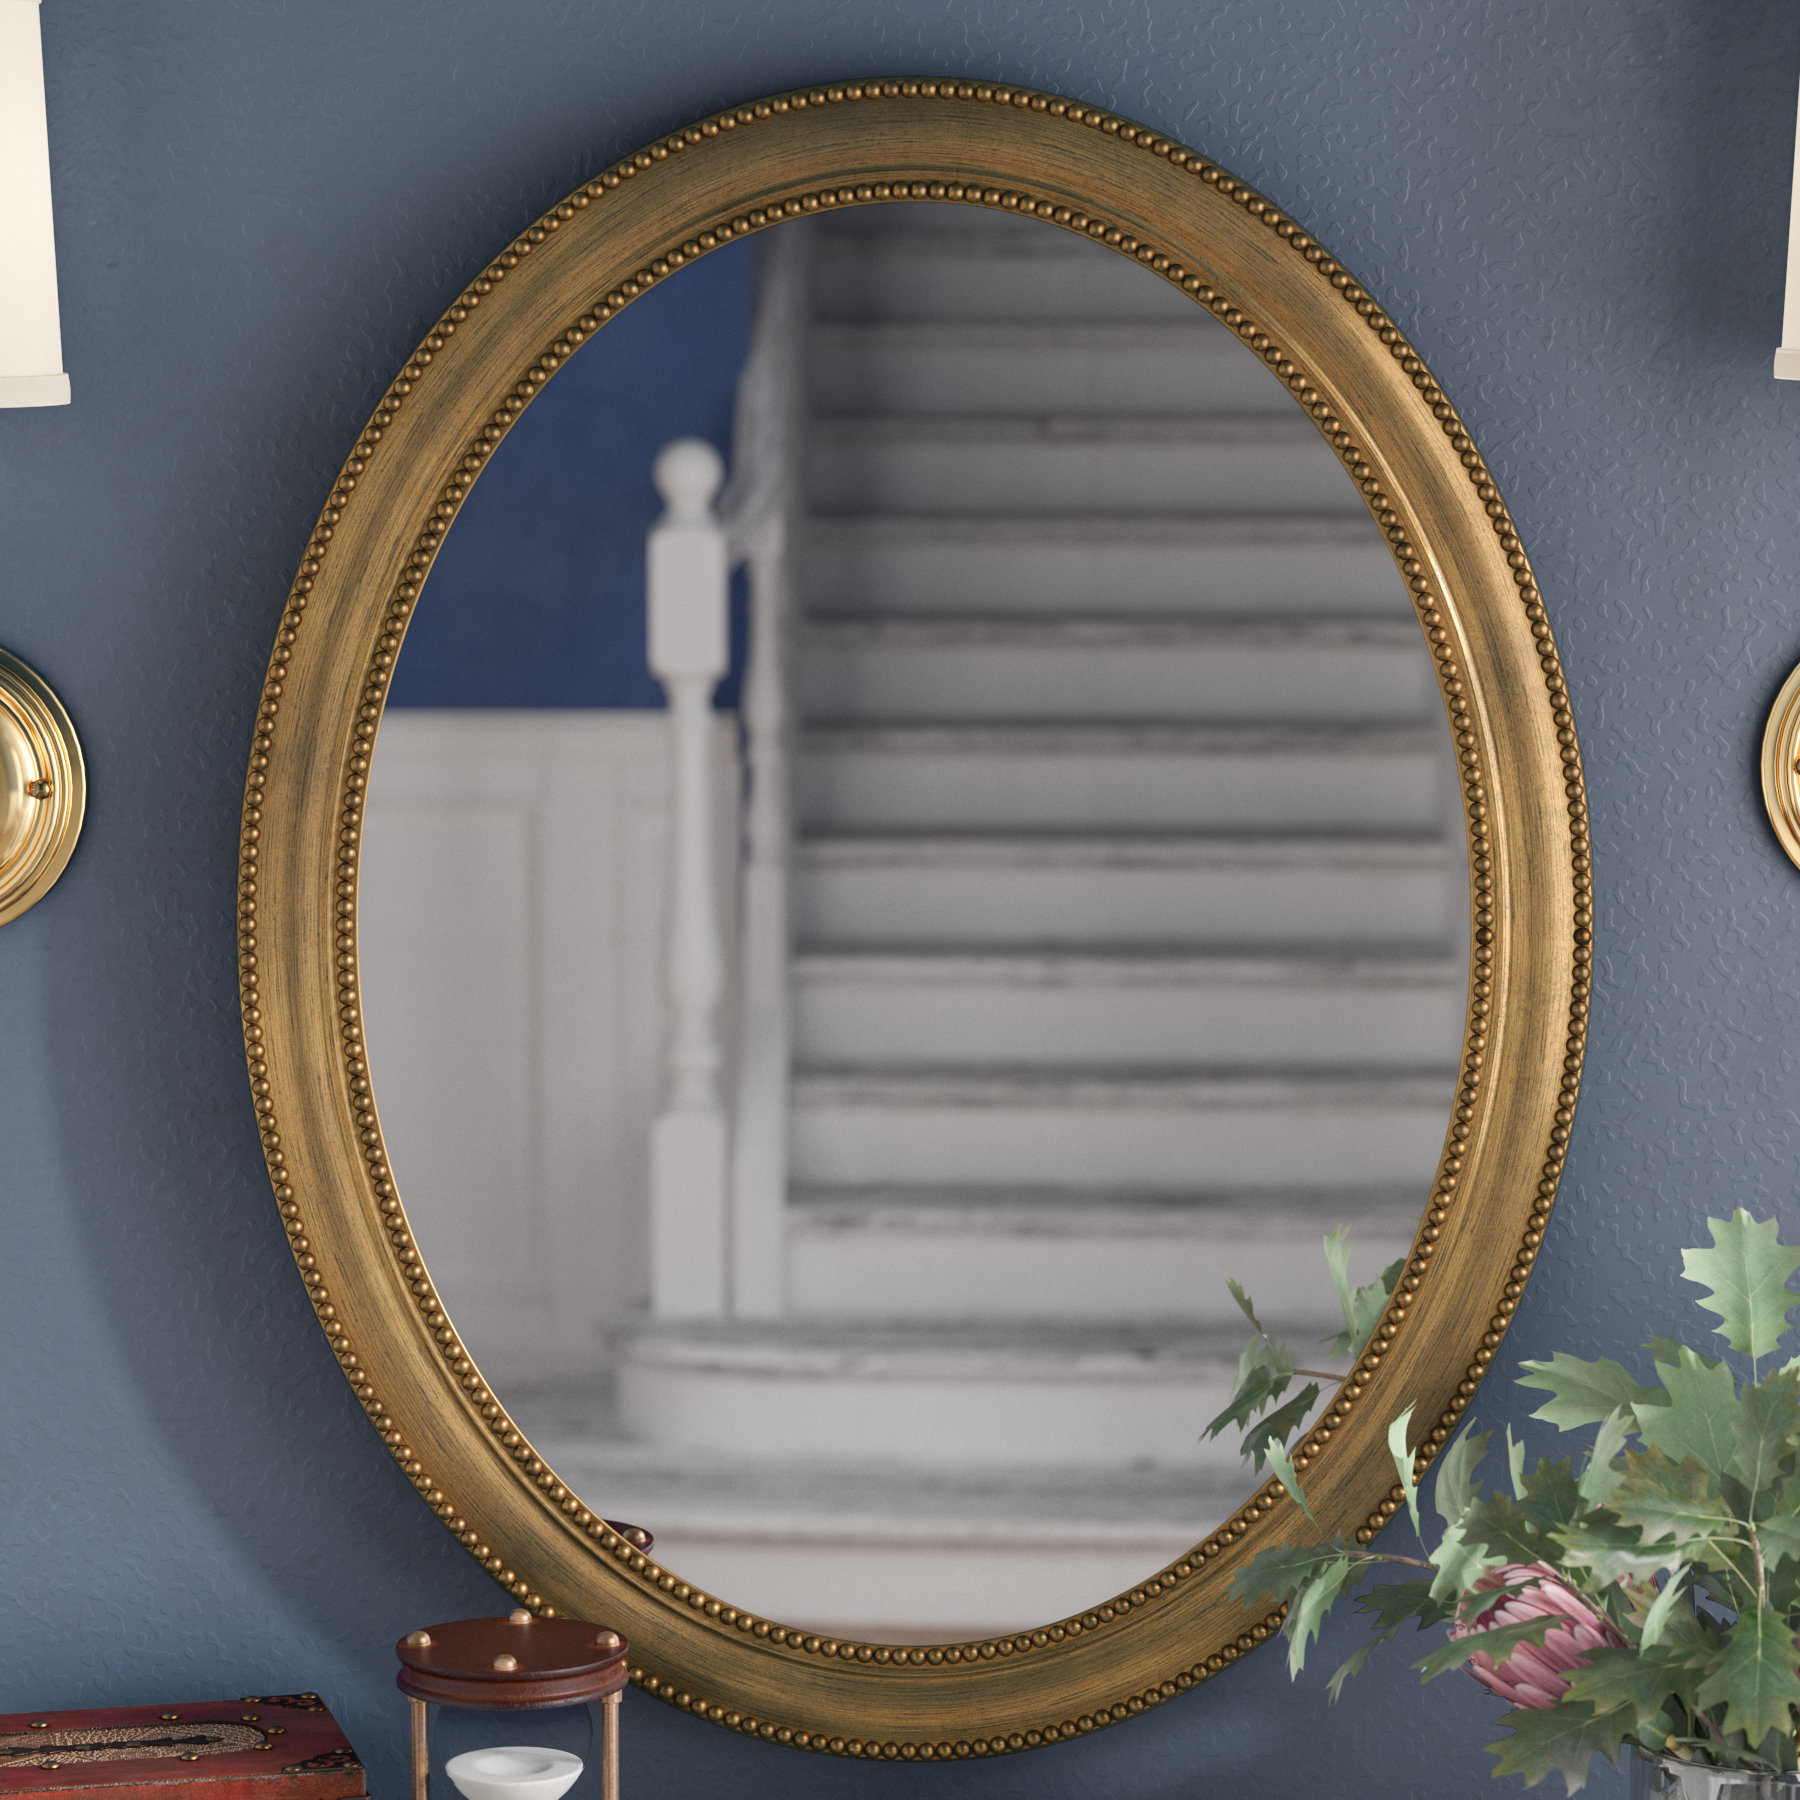 Oval Rope Mirror | Wayfair With Oval Metallic Accent Mirrors (View 10 of 20)